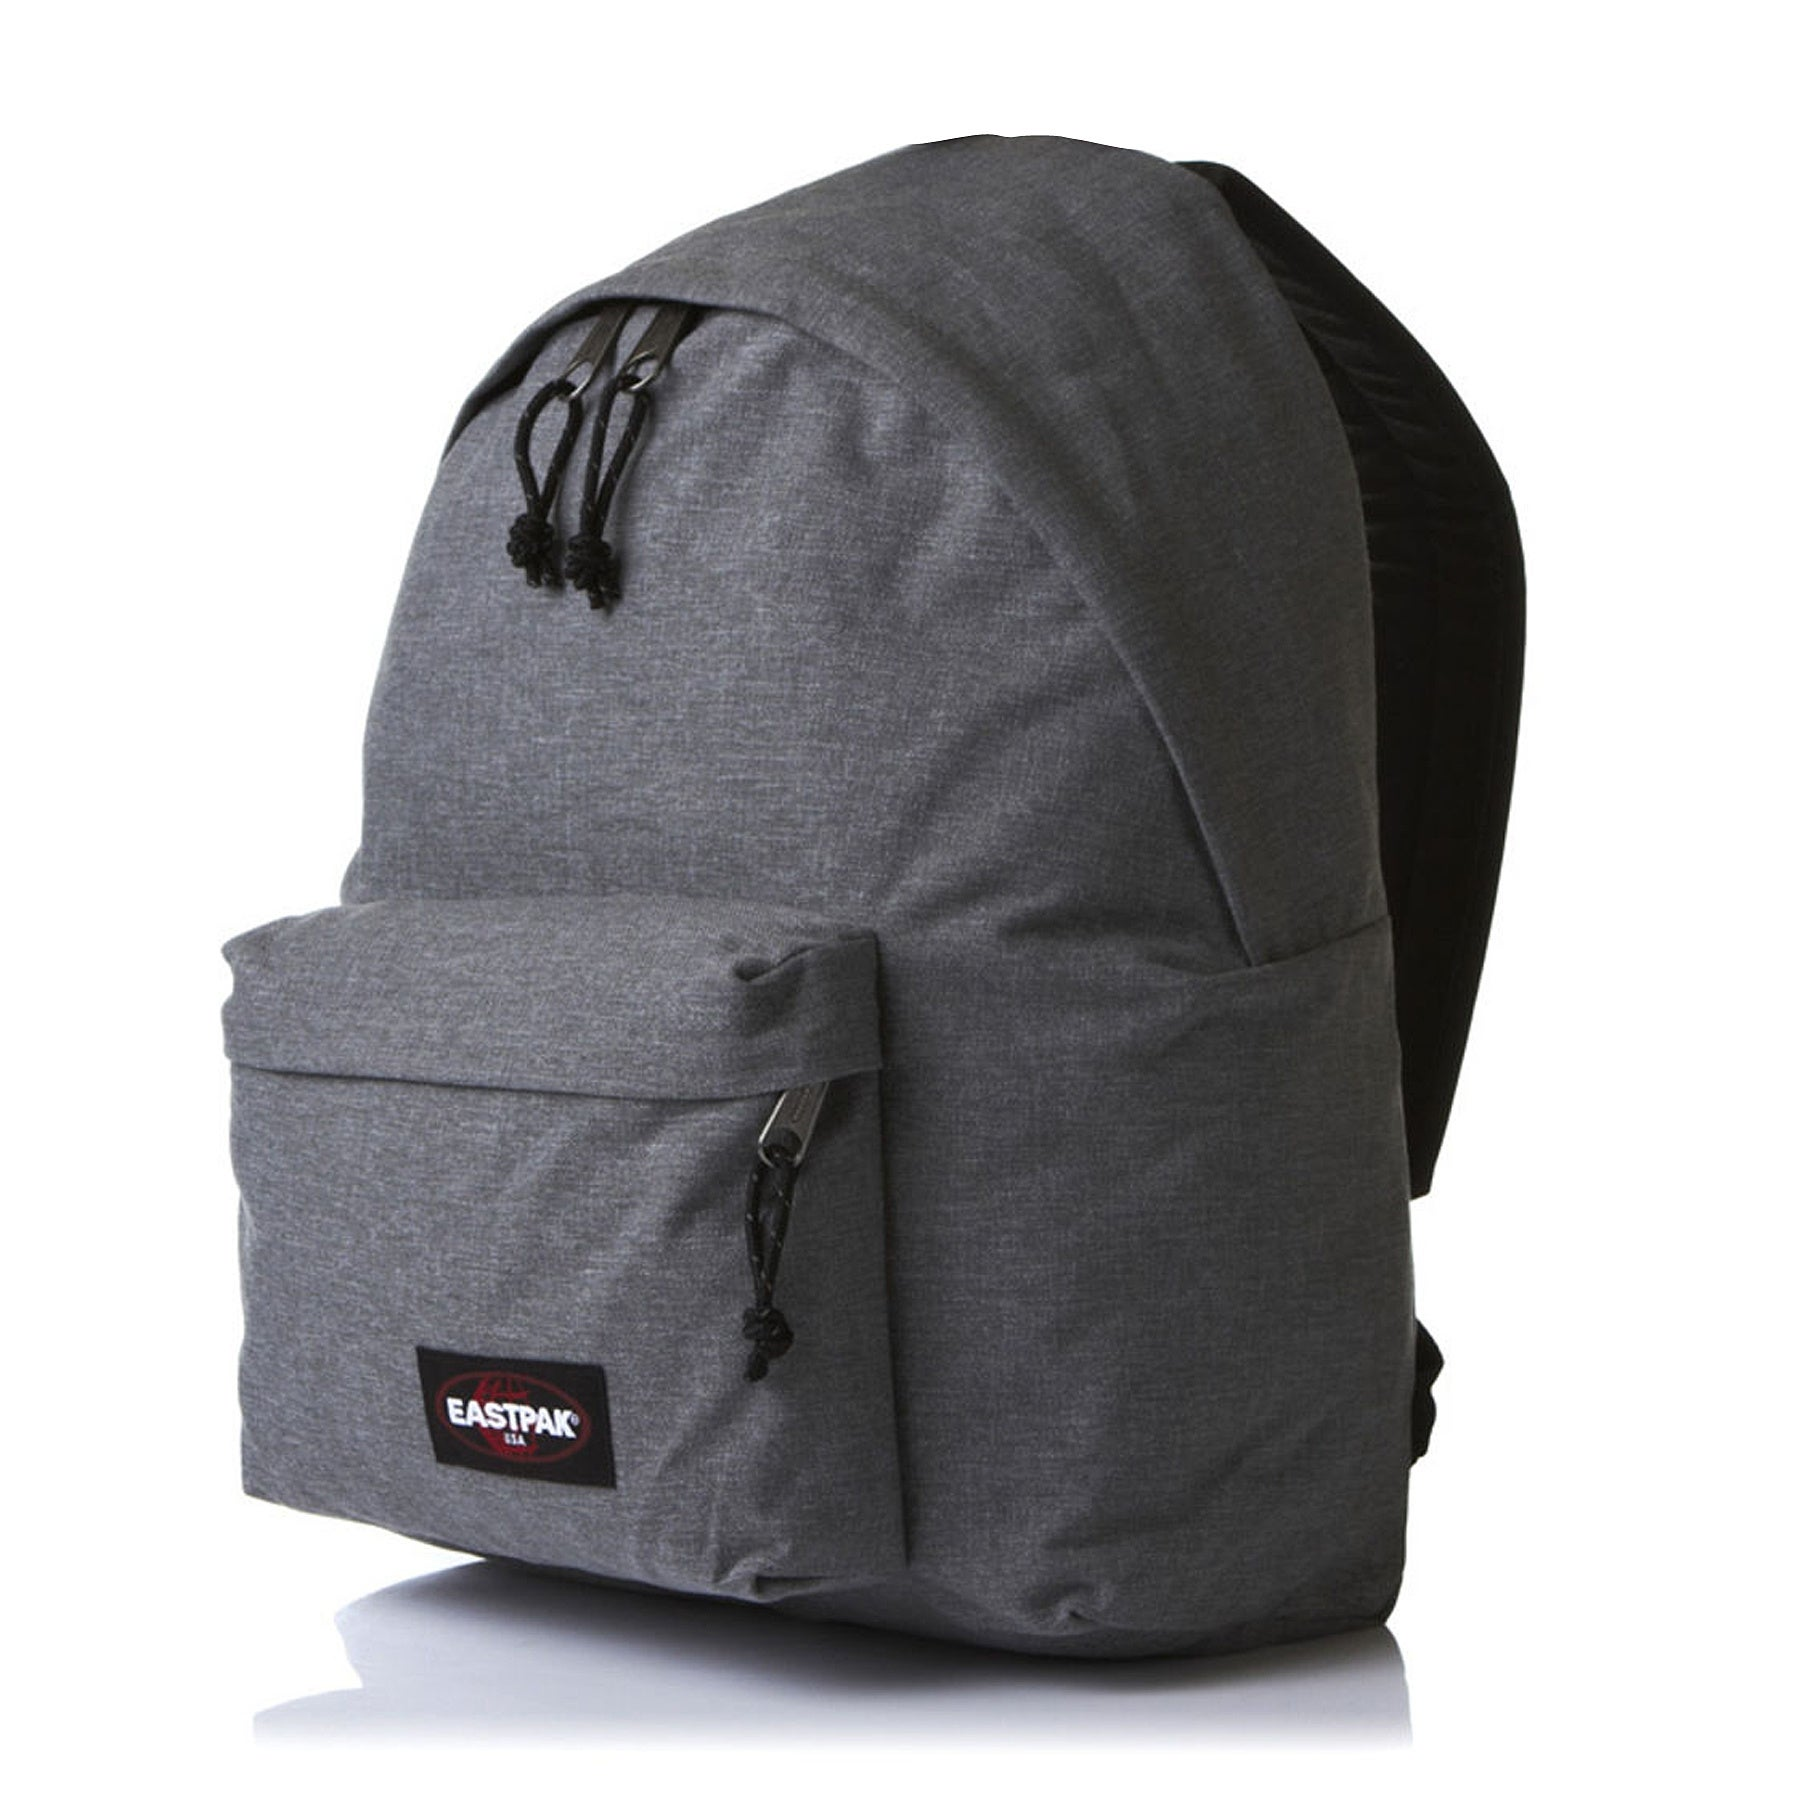 Eastpak Padded Pak'r Rucksack - Sunday Grey